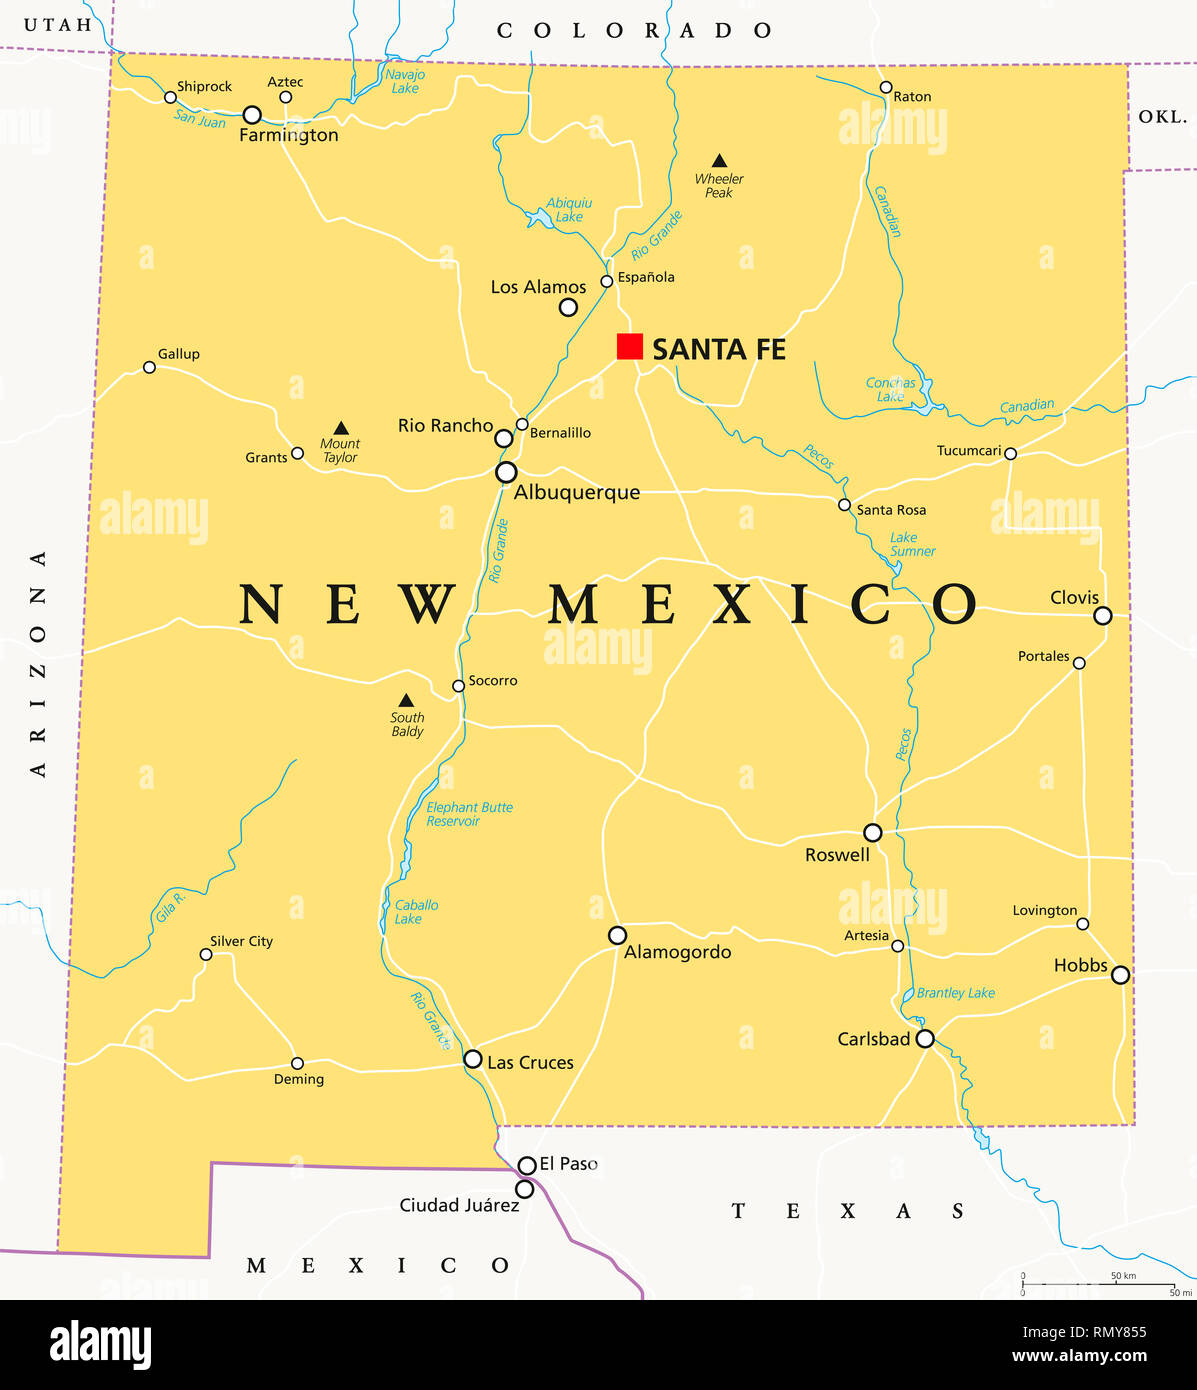 Map Of Texas Cities And Rivers.New Mexico Political Map With Capital Santa Fe Borders Important